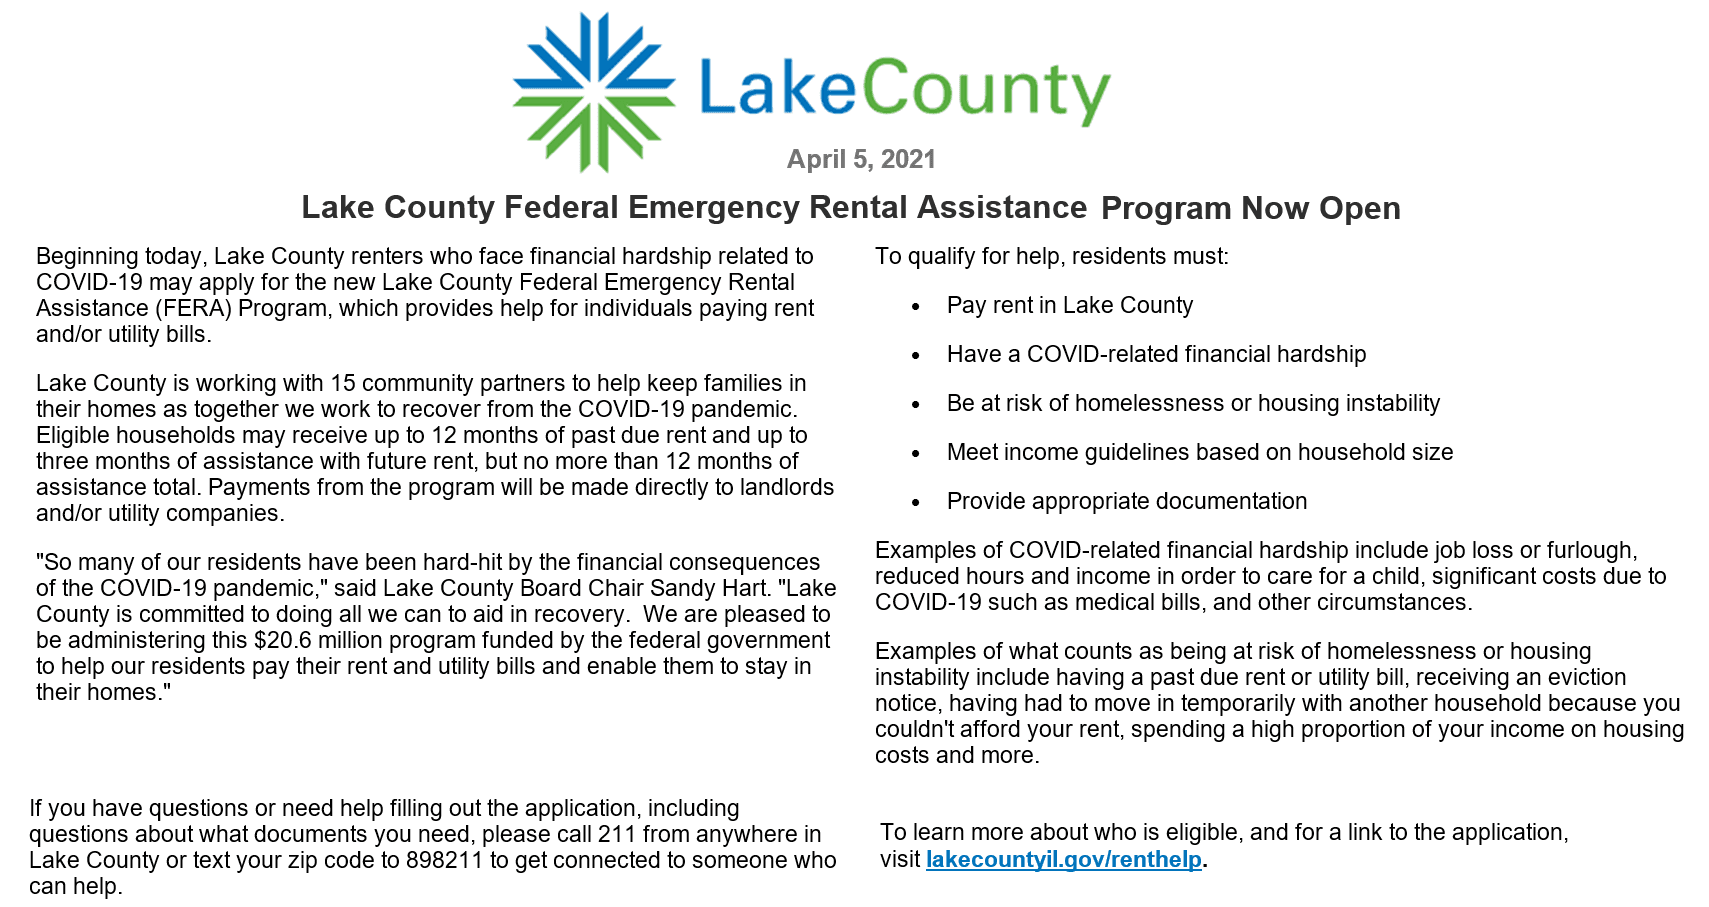 Lake County Federal Emergency Rental Assistance Program Now Open